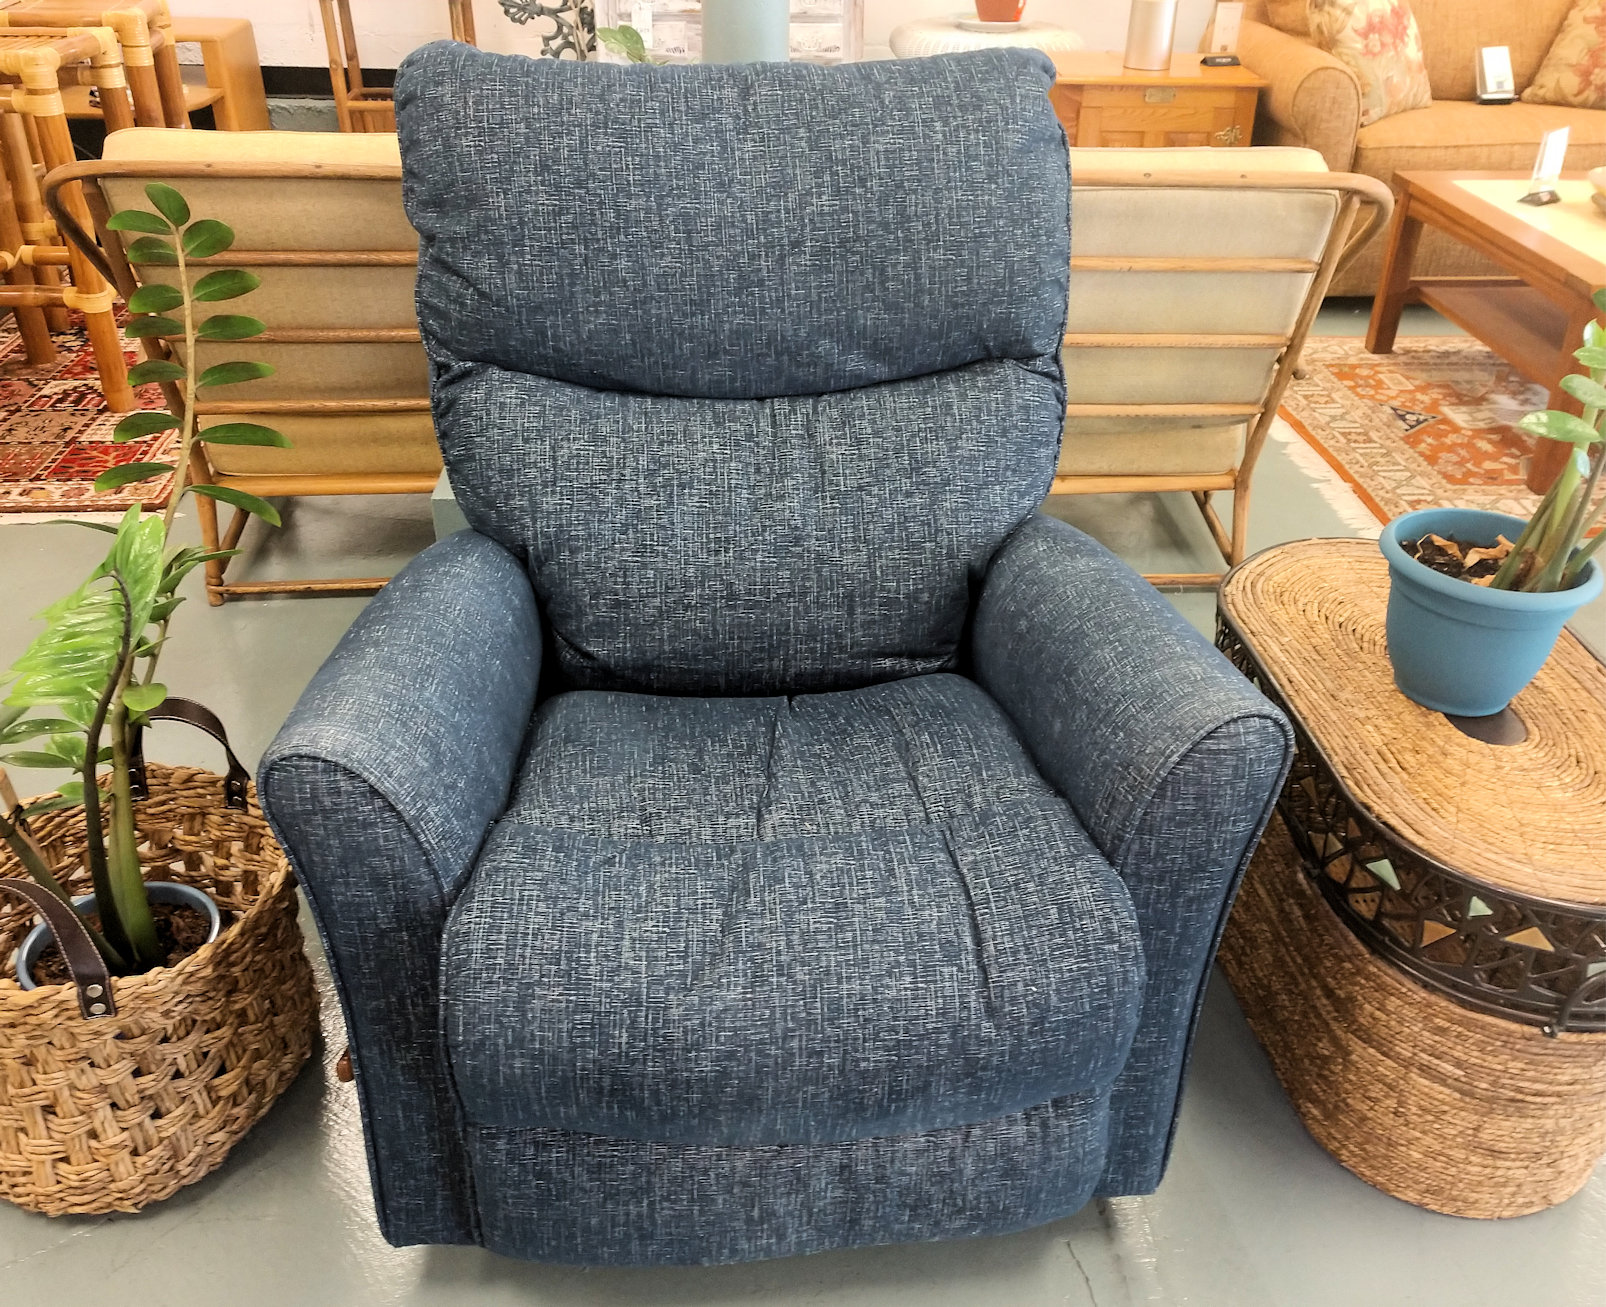 LR0256-La-Z-Boy-Recliner-Heather-Blue